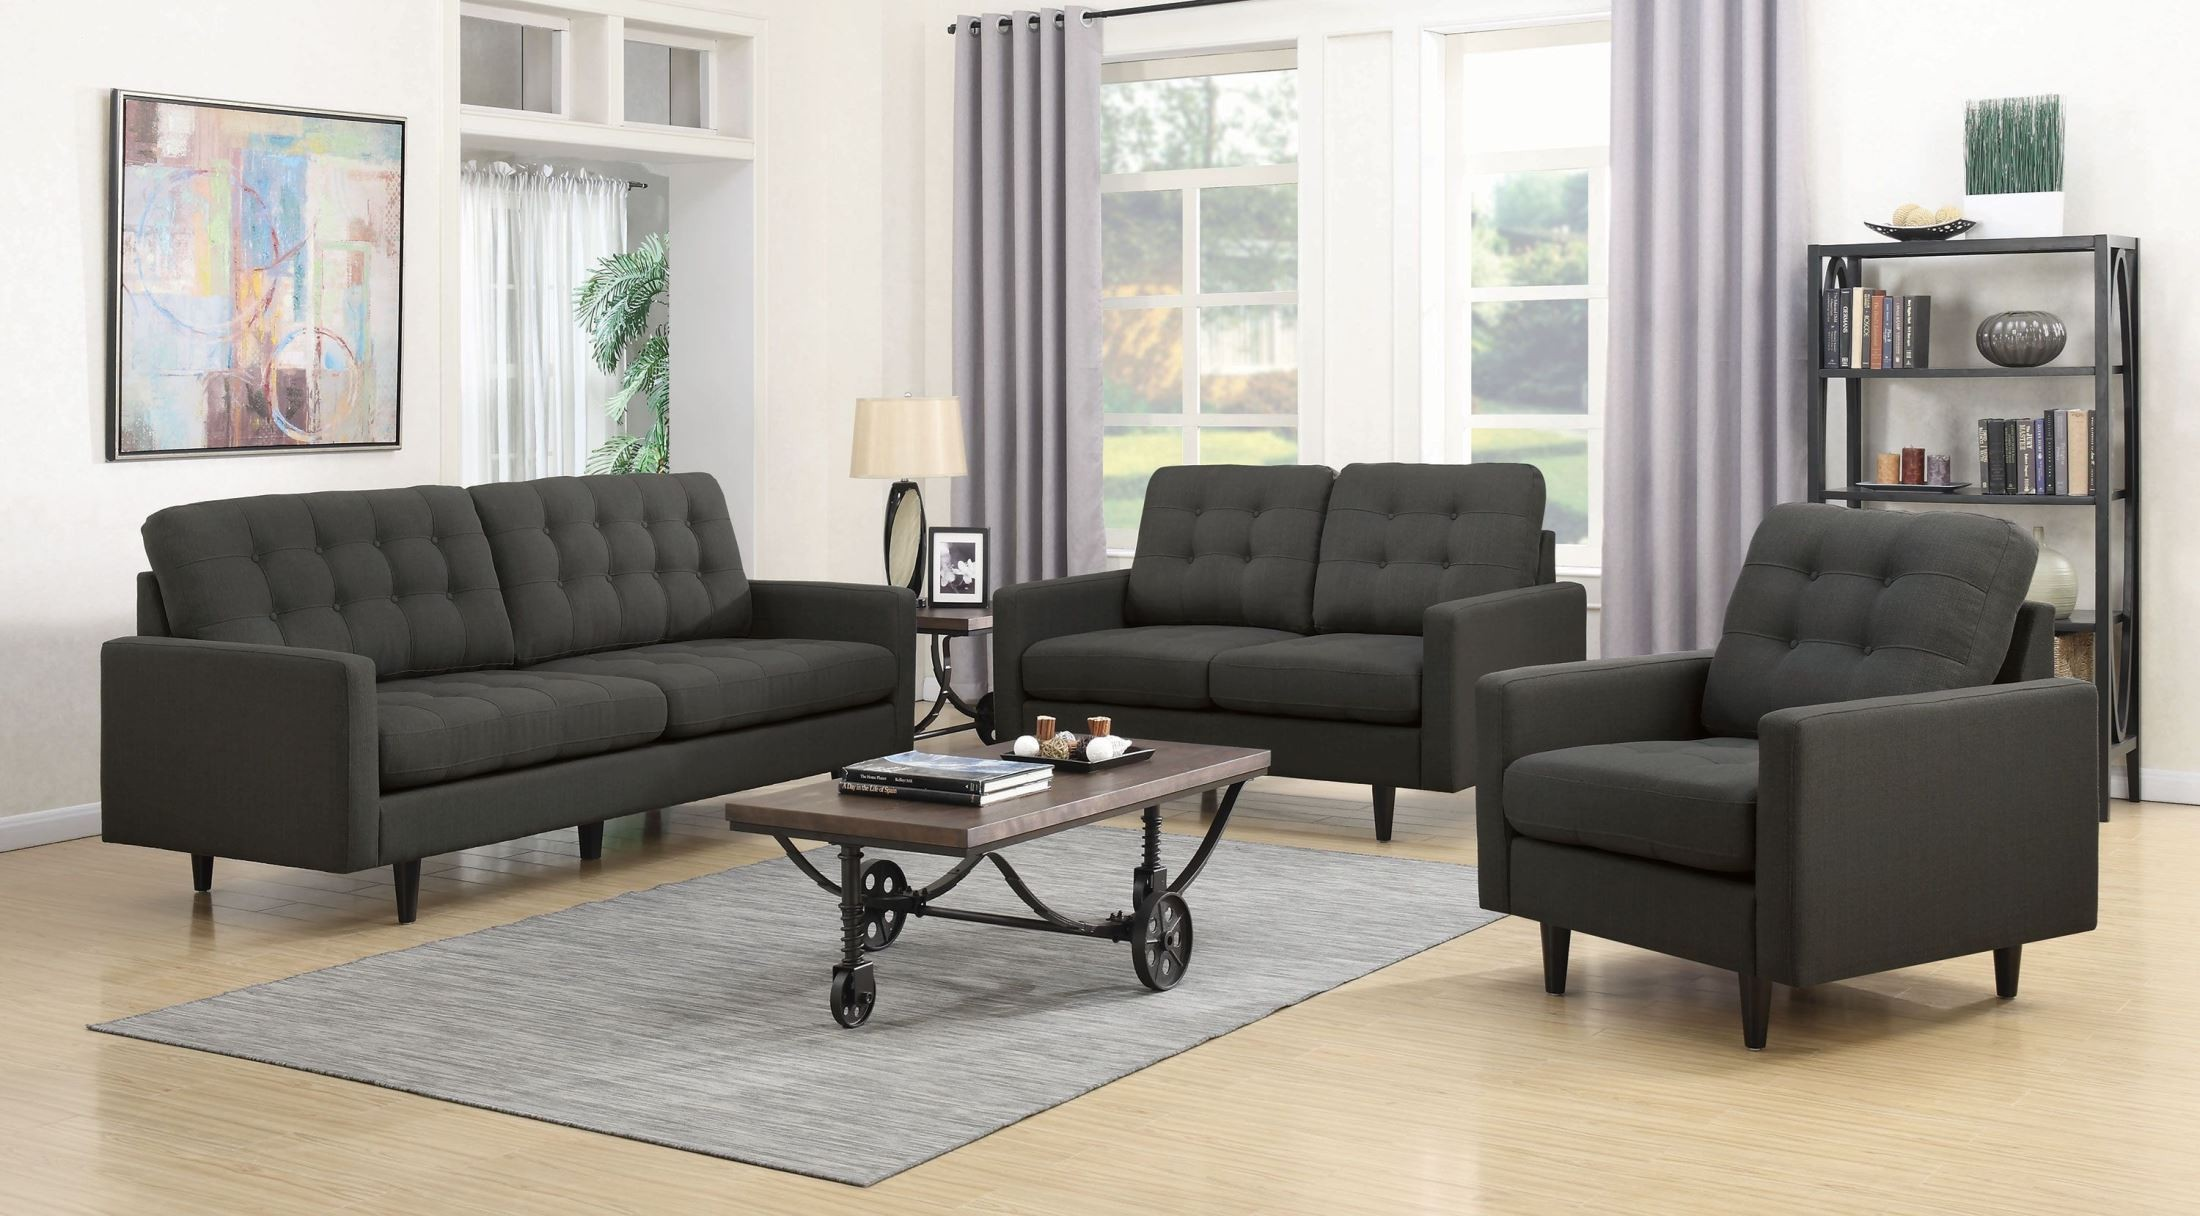 Kesson Charcoal Living Room Set From Coaster Coleman Furniture